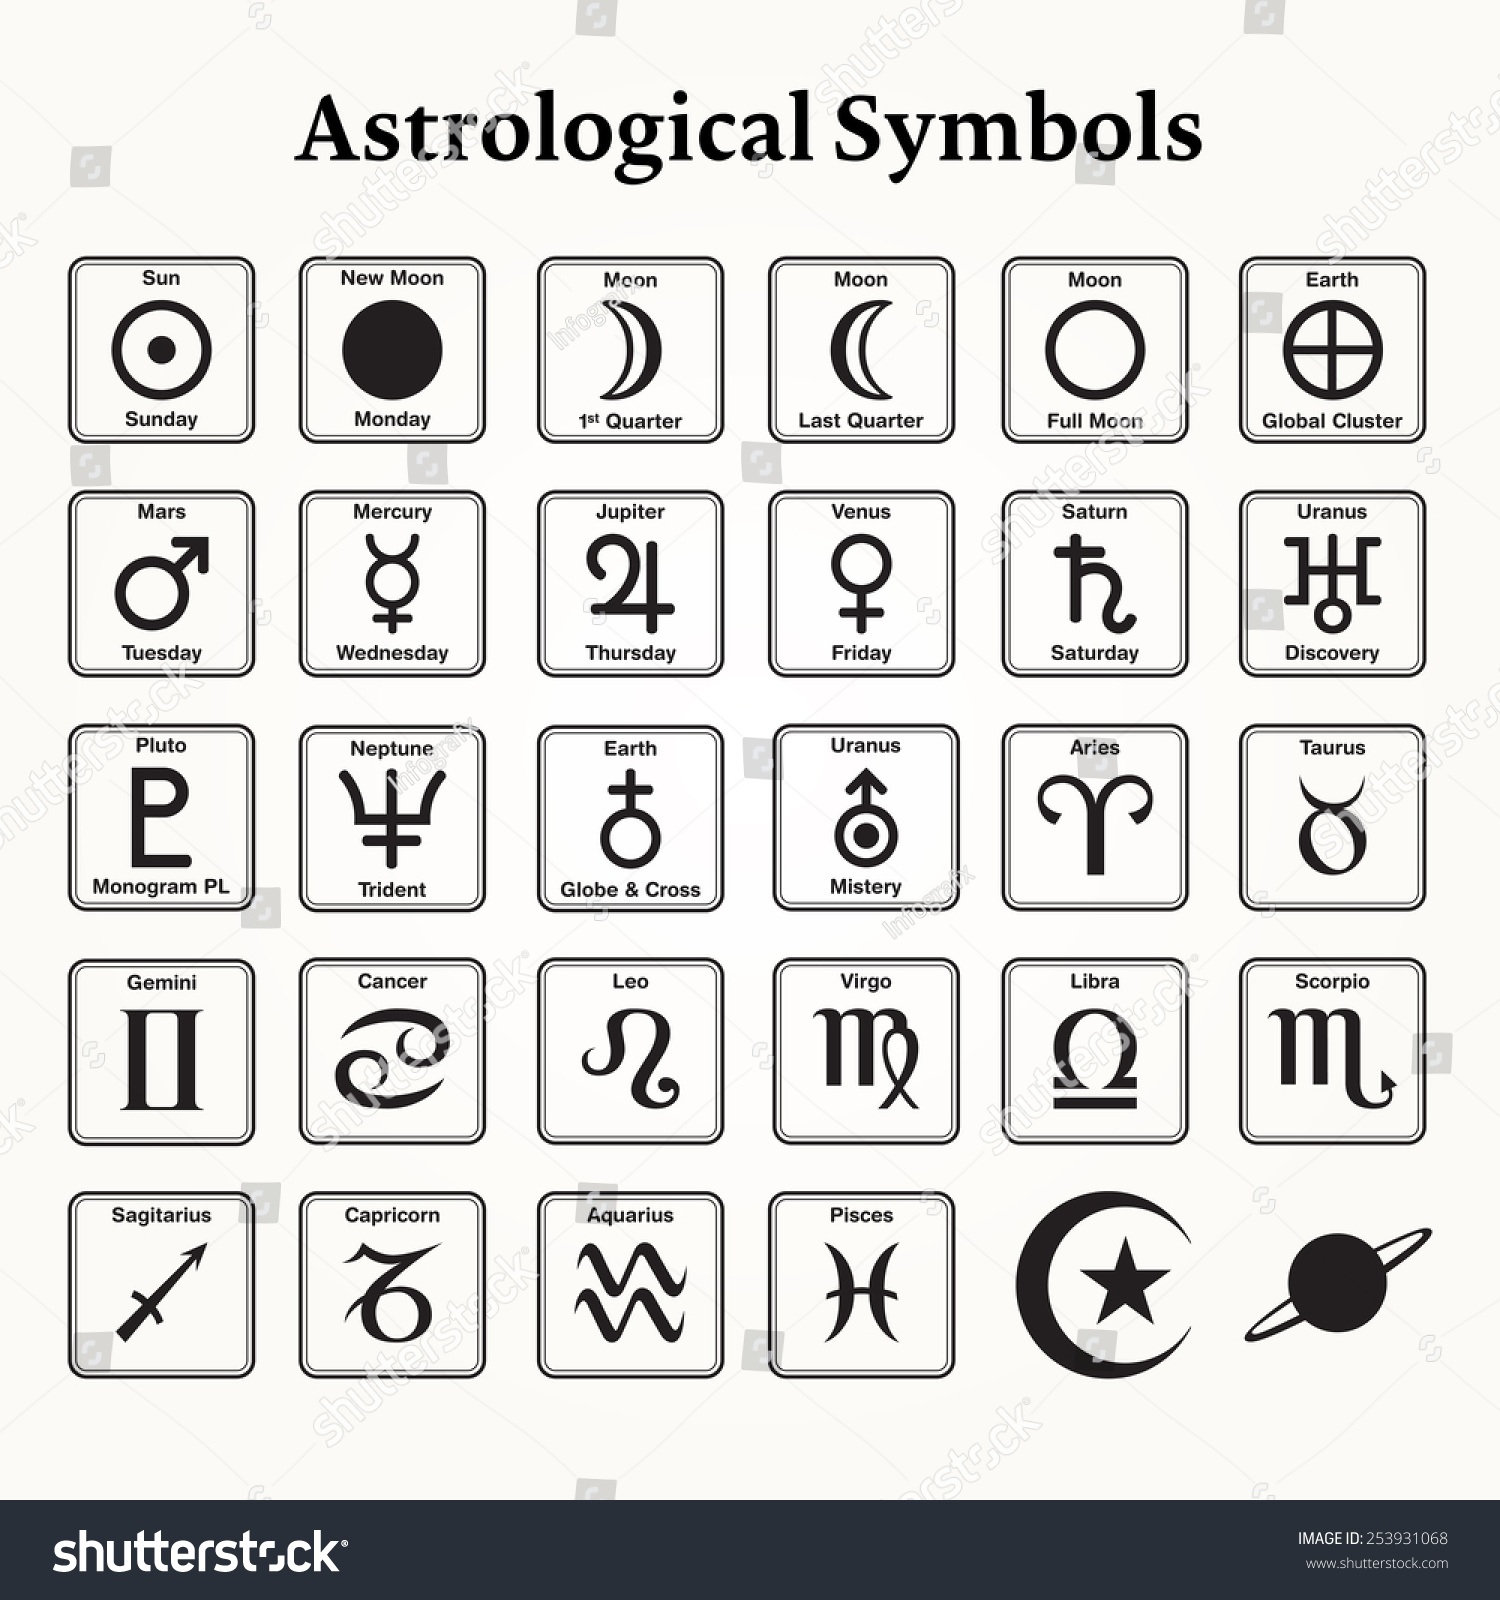 Elements Astrology Zodiac Symbols Signs Stock Vector Royalty Free